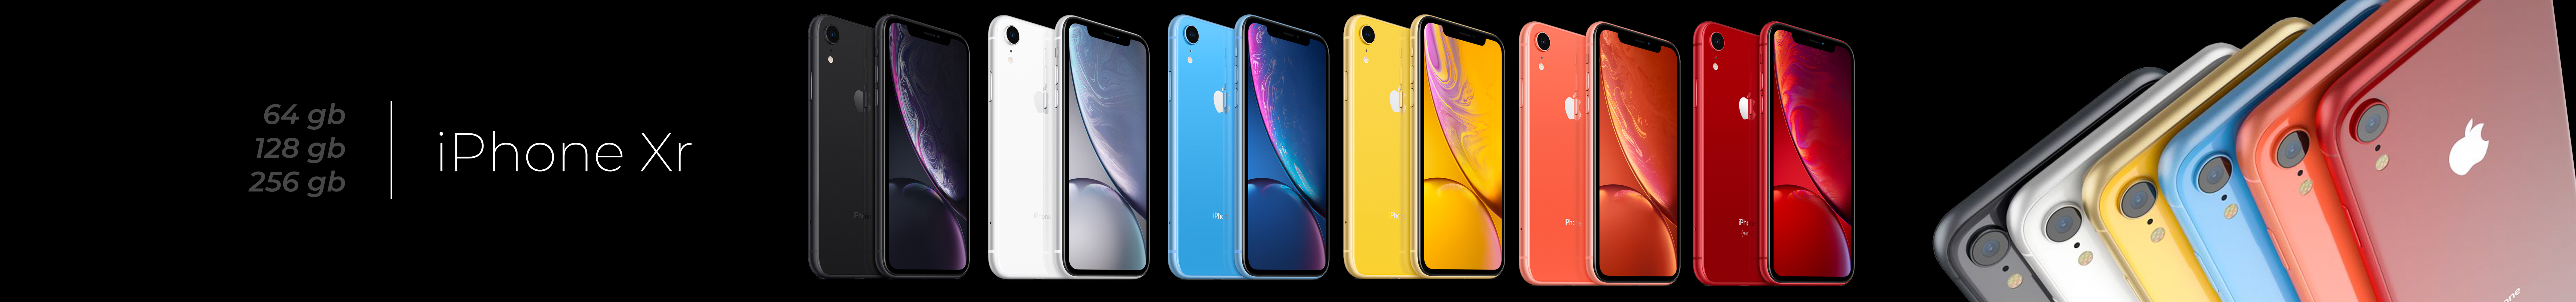 iPhone Xr Open Box Mobile